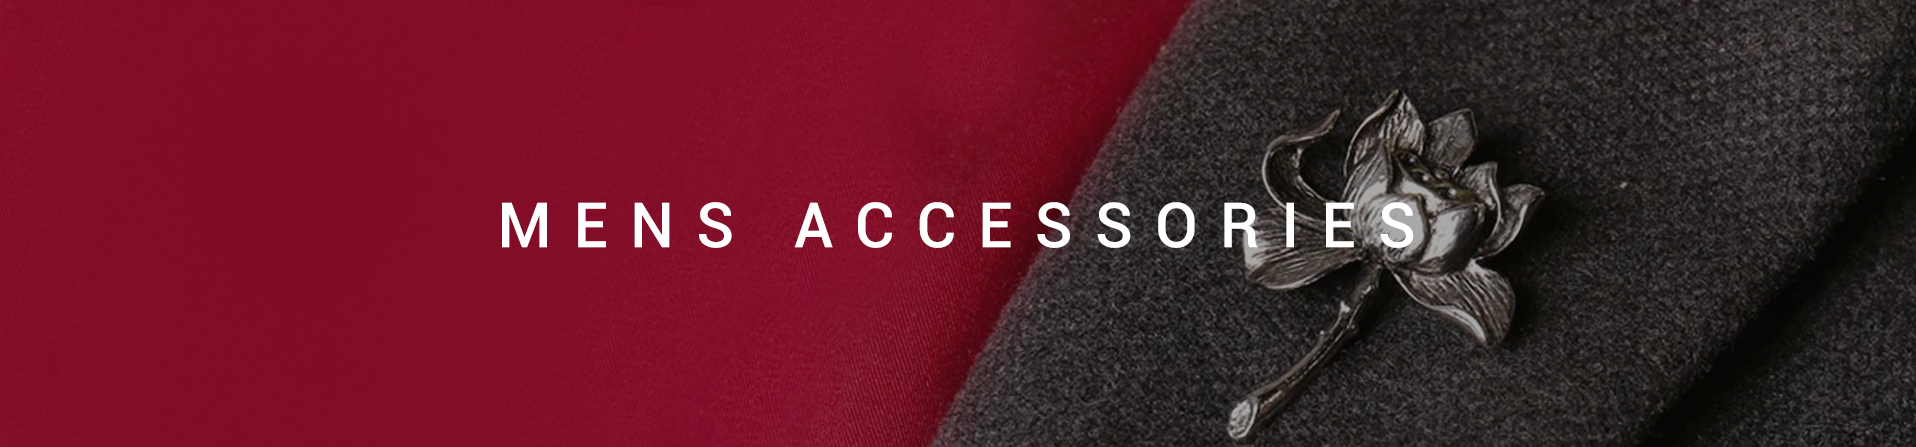 - Men - Mens Accessories -